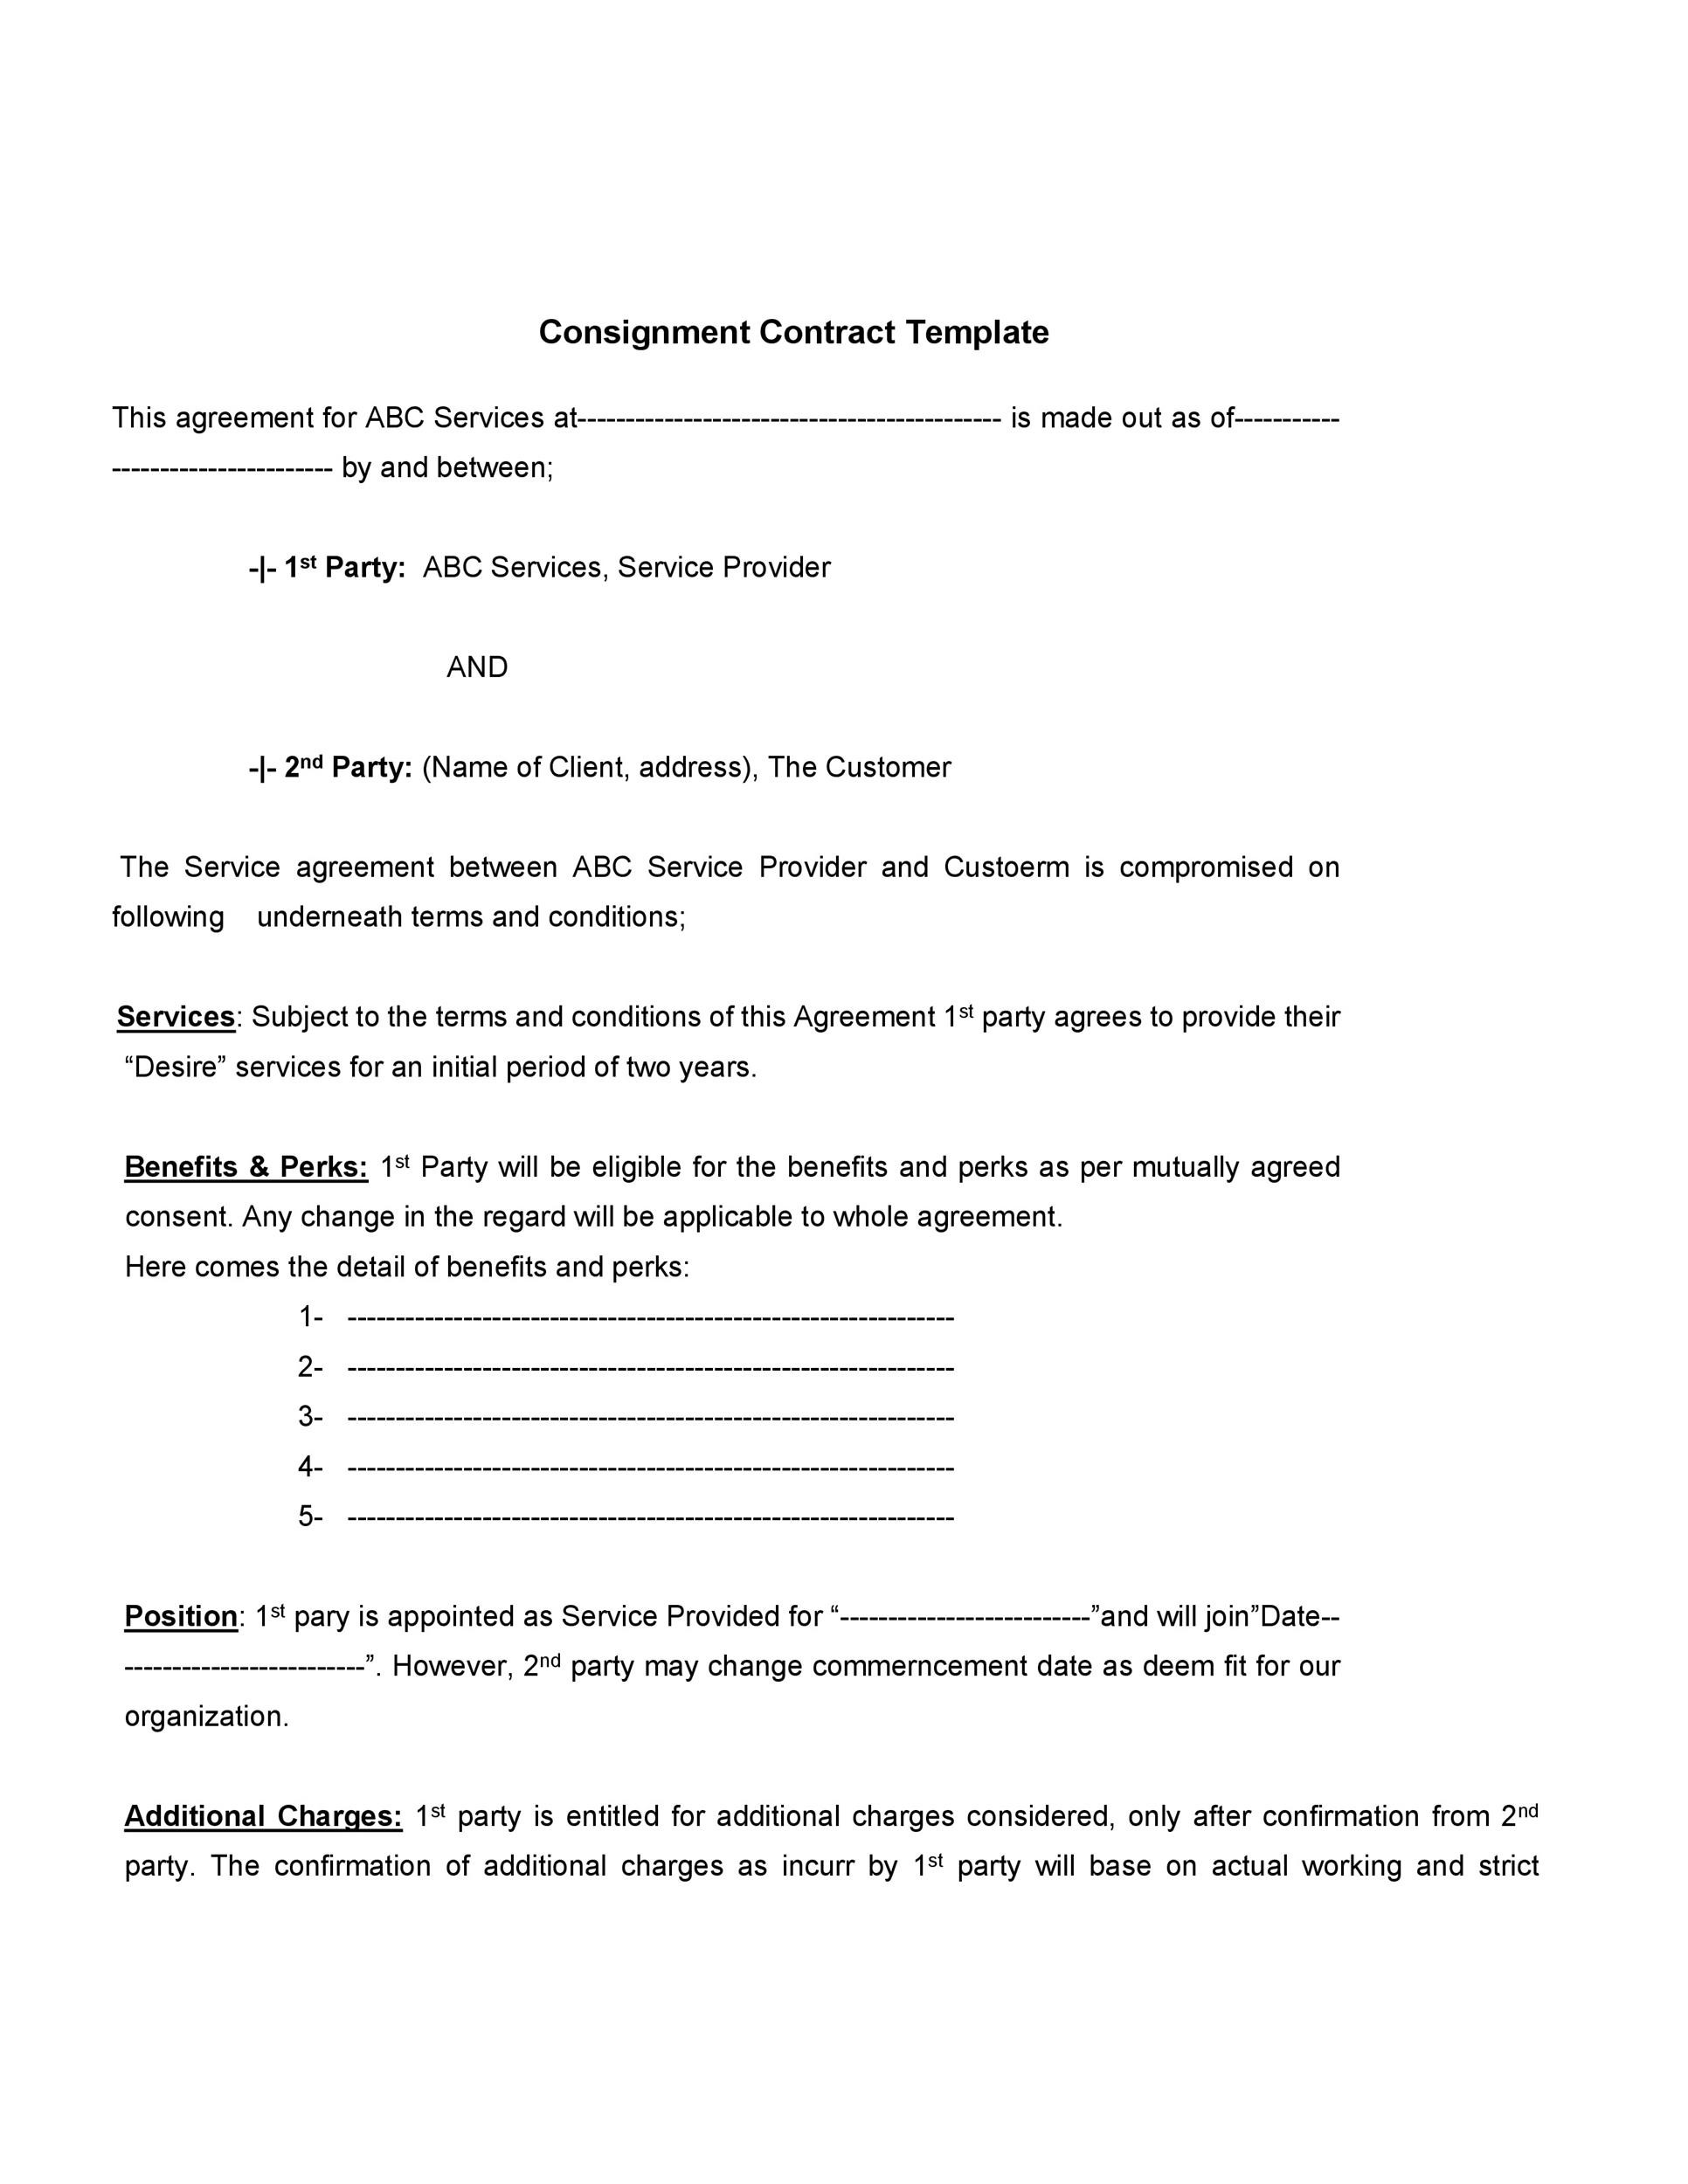 Free Consignment Agreement Template 04